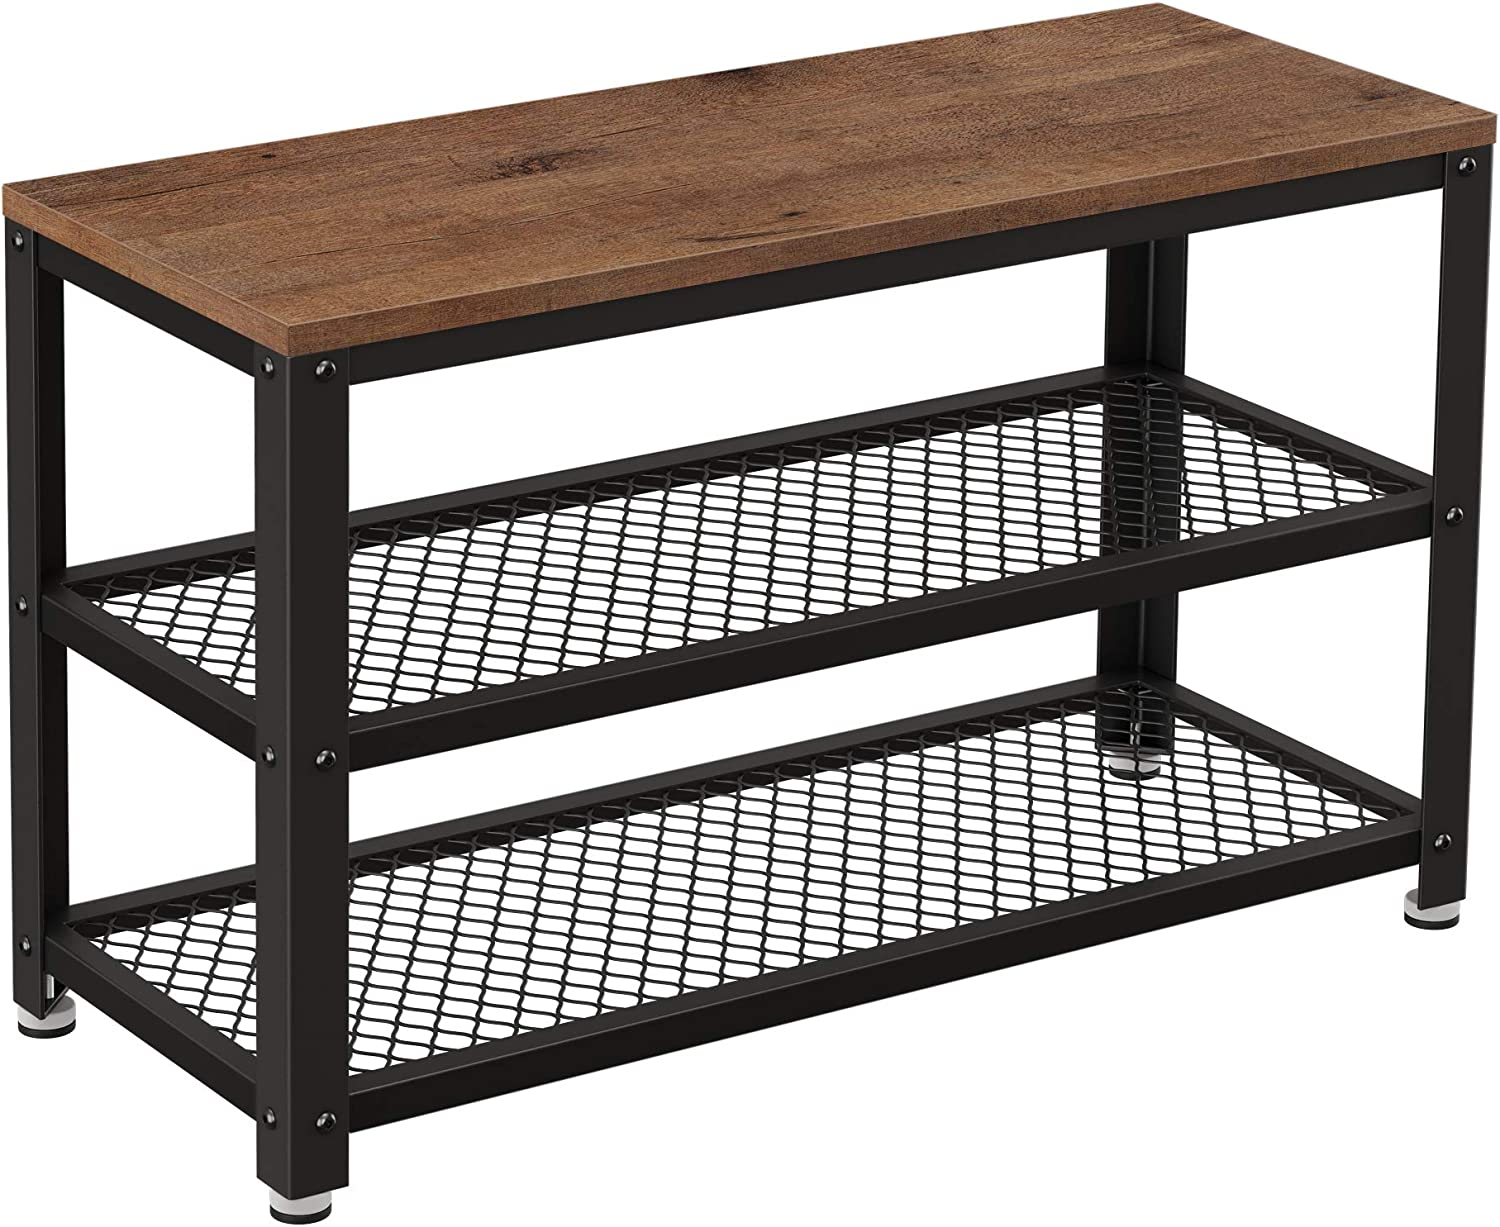 VASAGLE Shoe Bench, 3-Tier Shoe Rack, Storage Organiser with Seat and Shelf, Steel Frame, for Entryway, Living Room, Hallway, Industrial Accent Furniture, Hazelnut Brown and Black LBS073B03